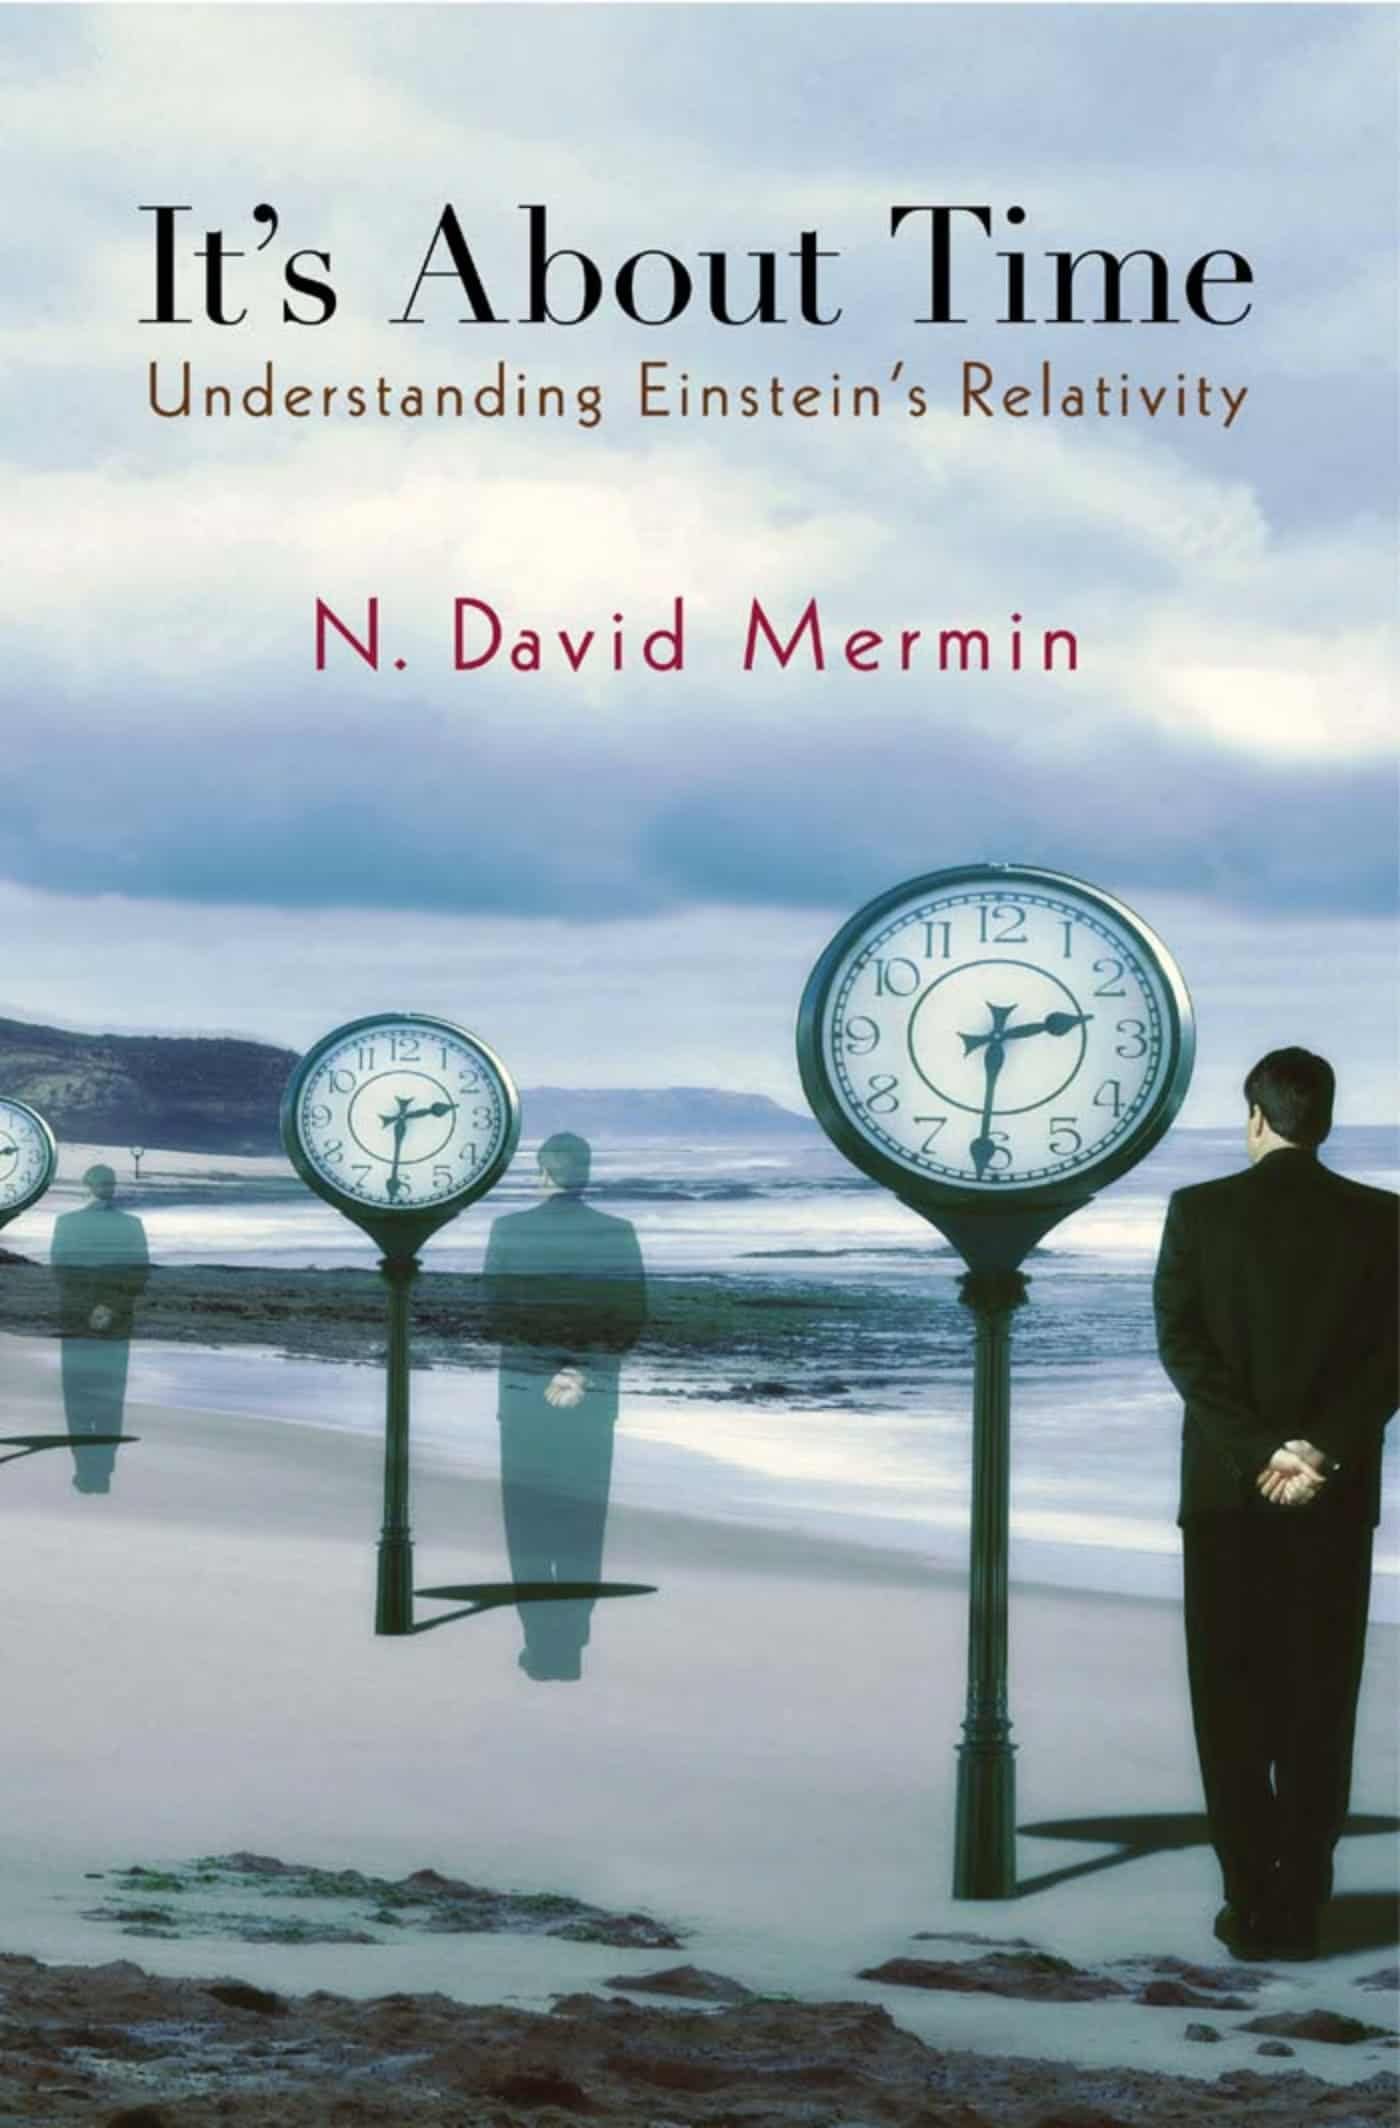 It's About Time Understanding Einstein's Relativity - It's About Time: Understanding Einstein's Relativity